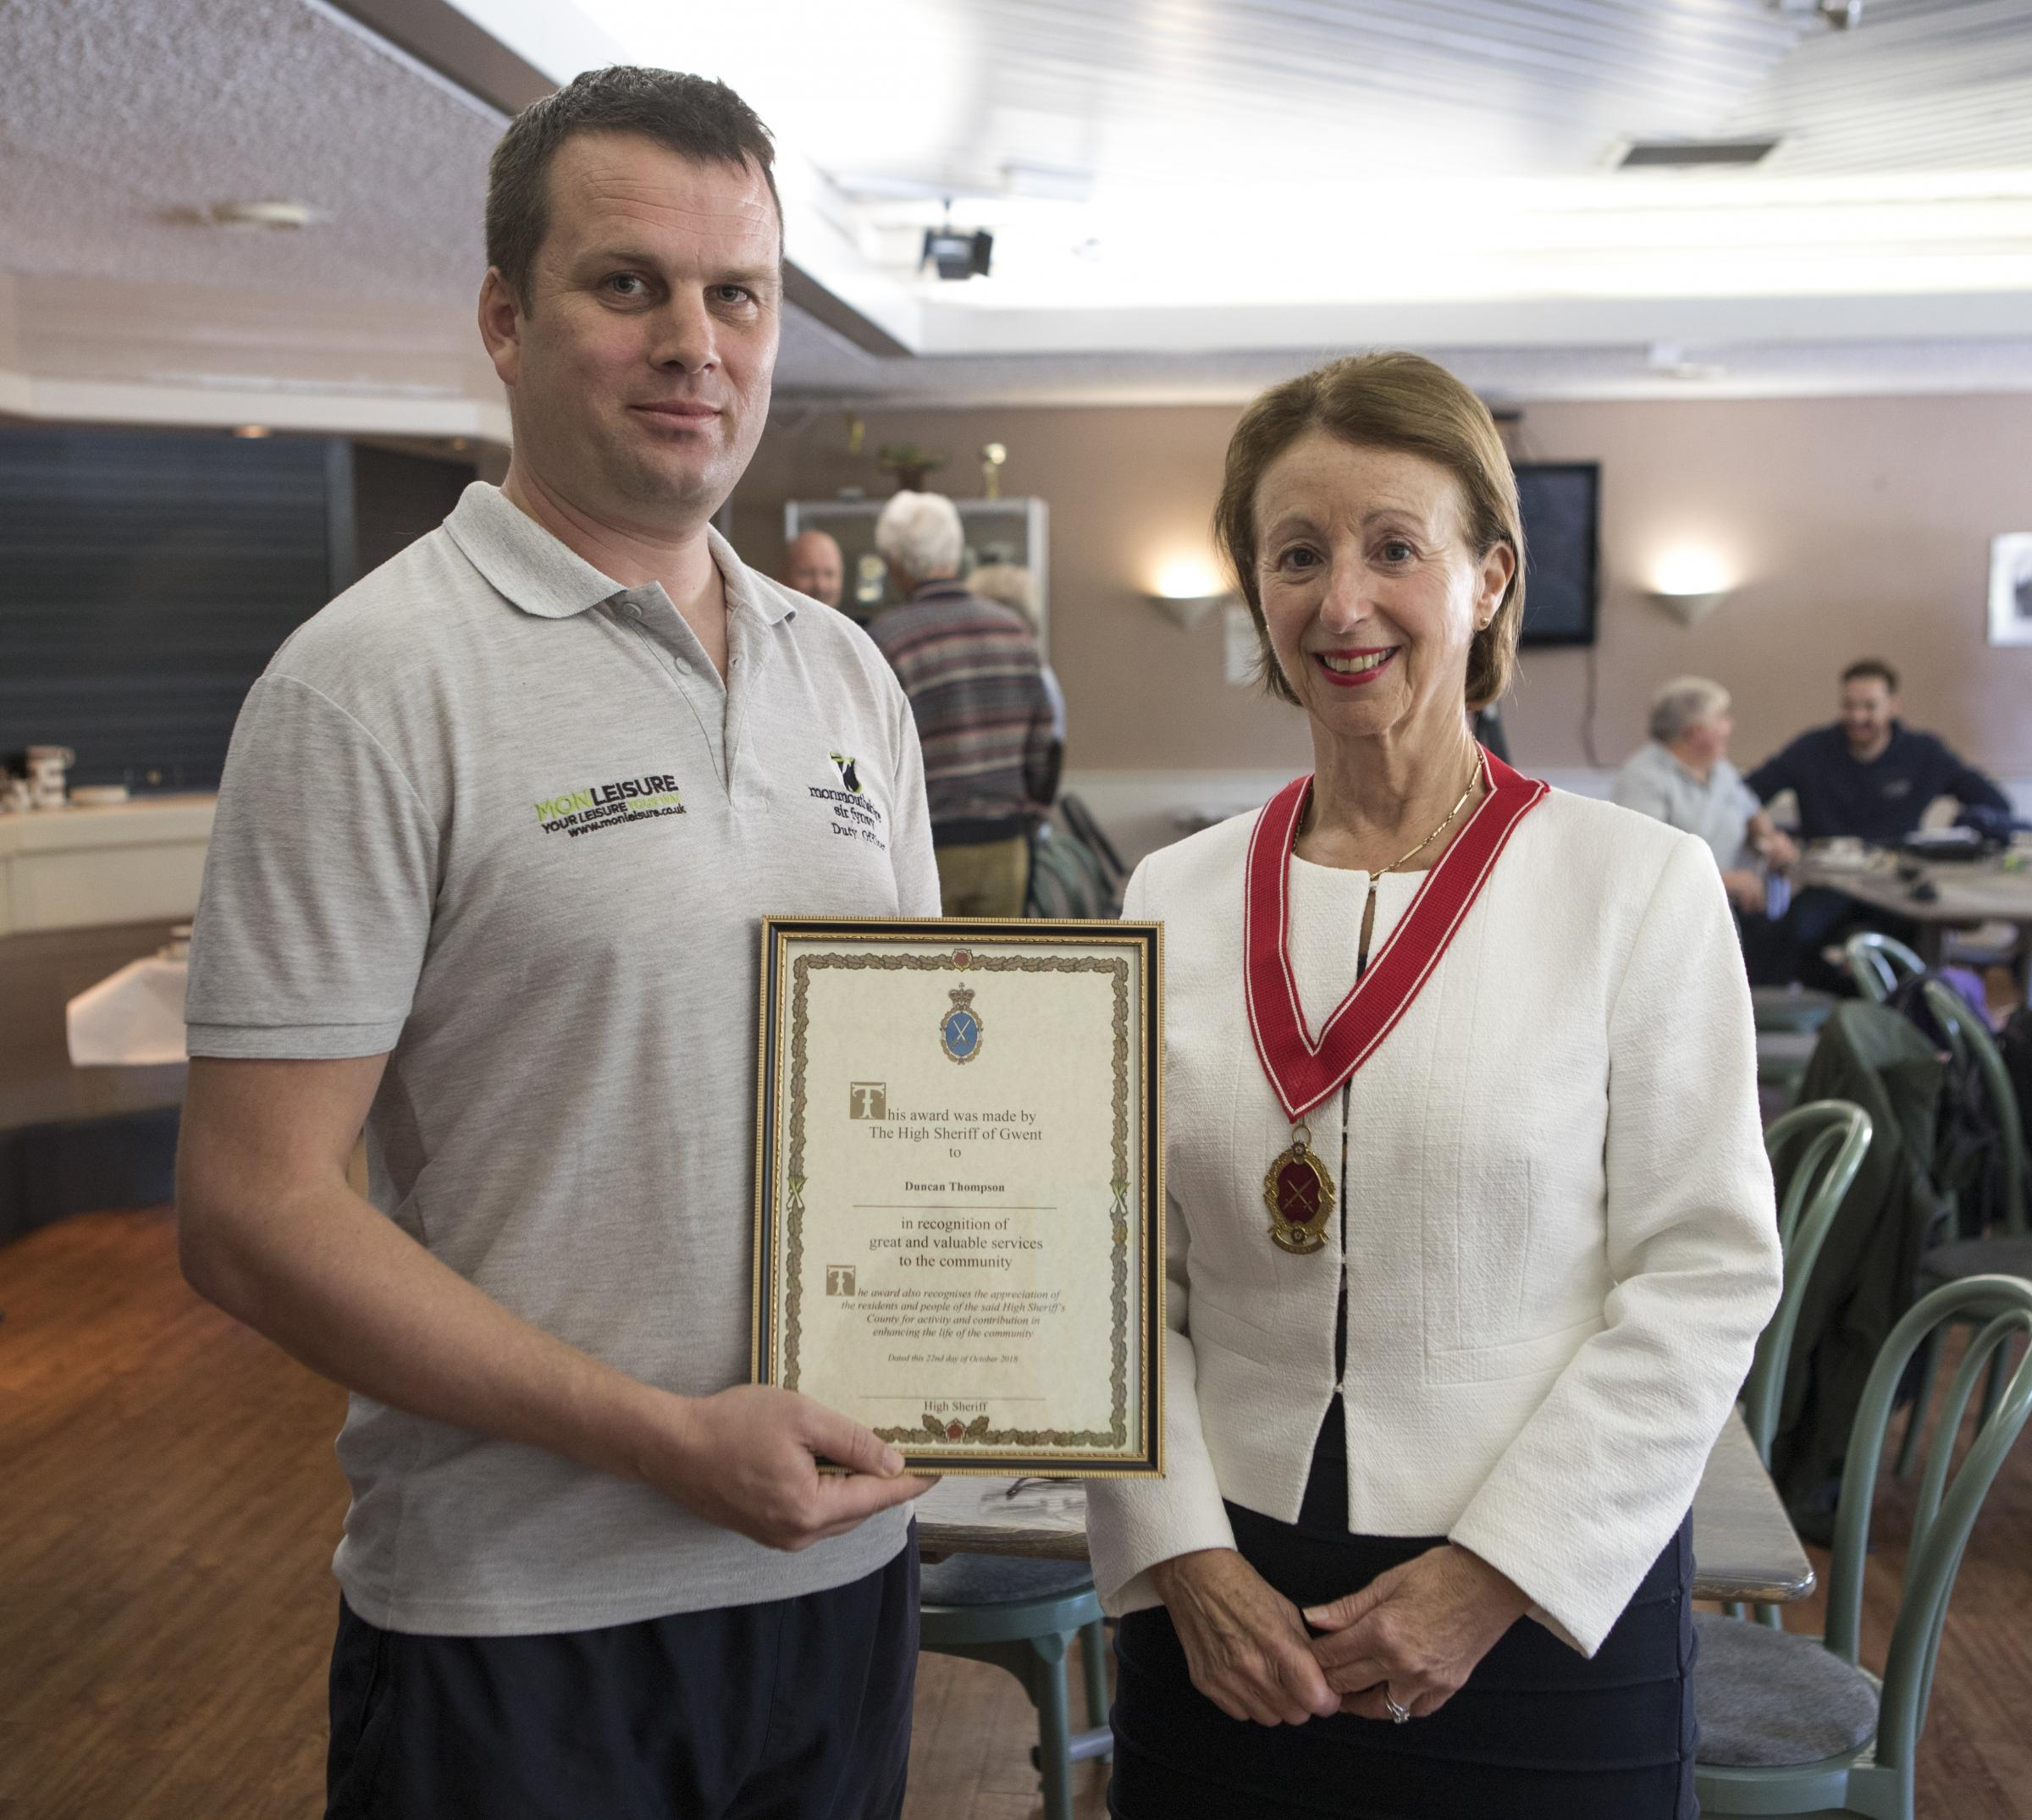 Duncan Thompson with the the high sheriff of Gwent, Sharon Linnard Picture: Monmouthshire County Council